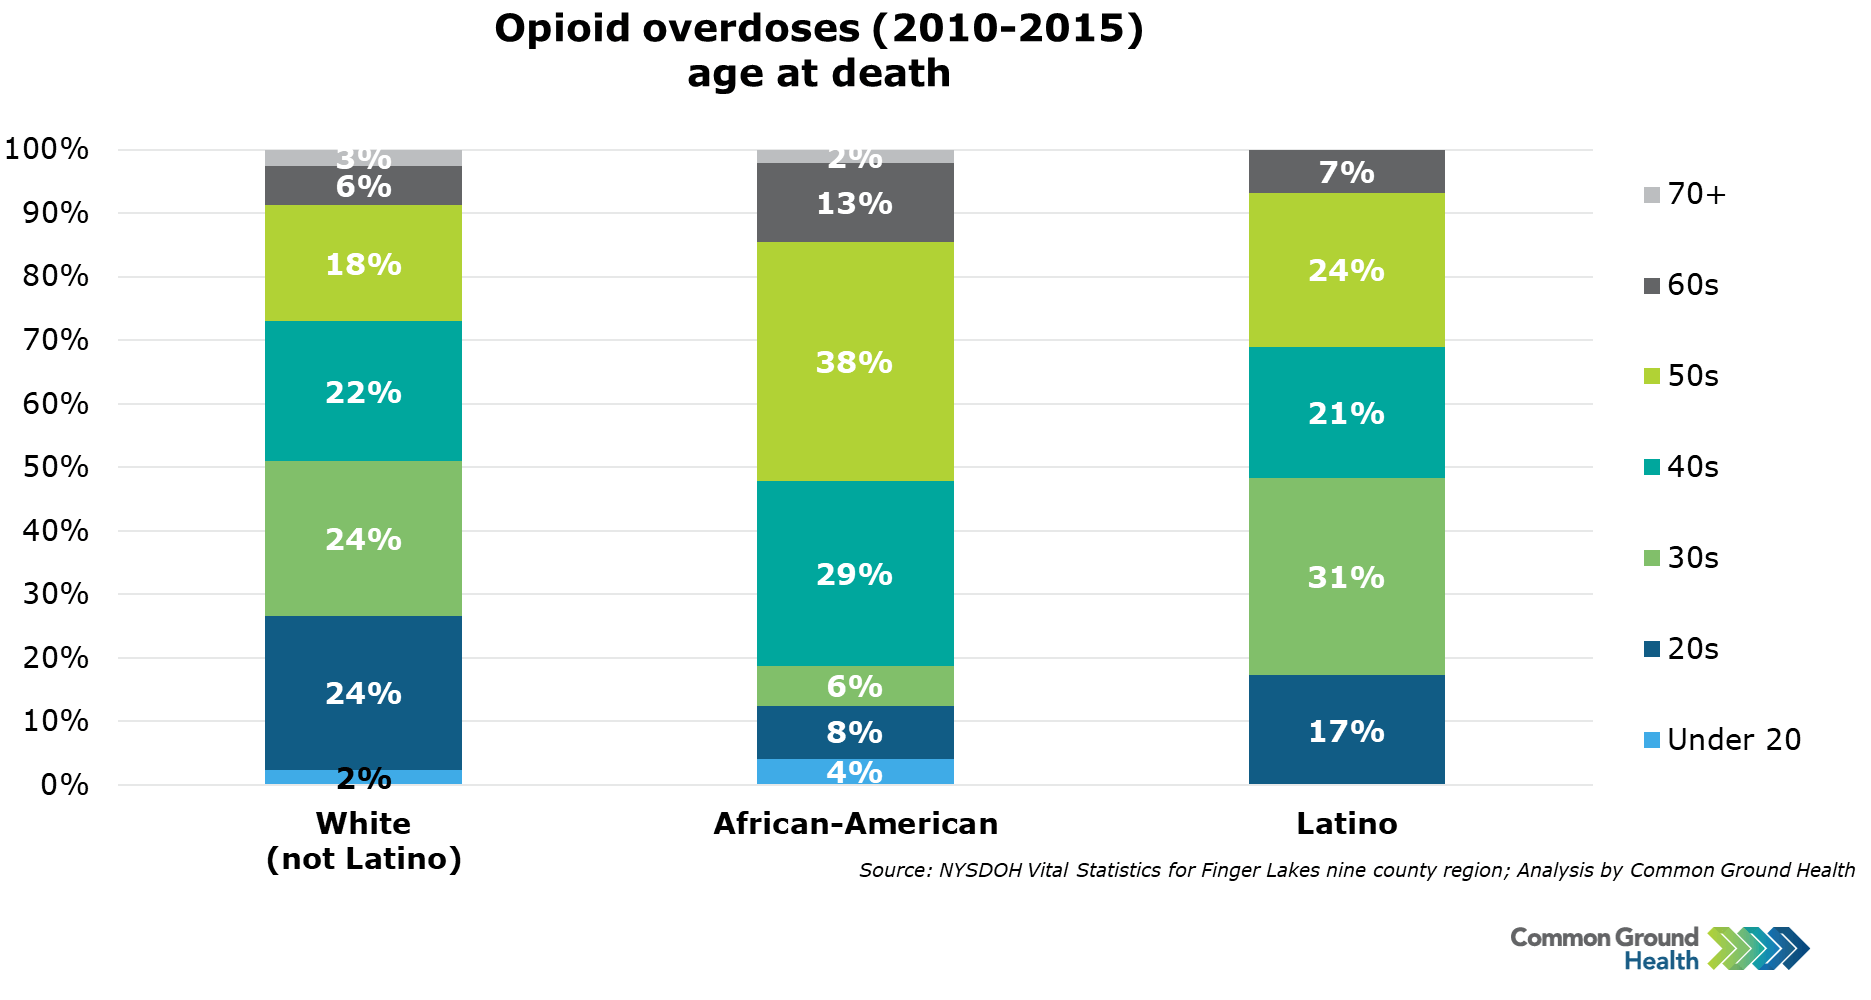 Opioid Overdoses, Age at Death